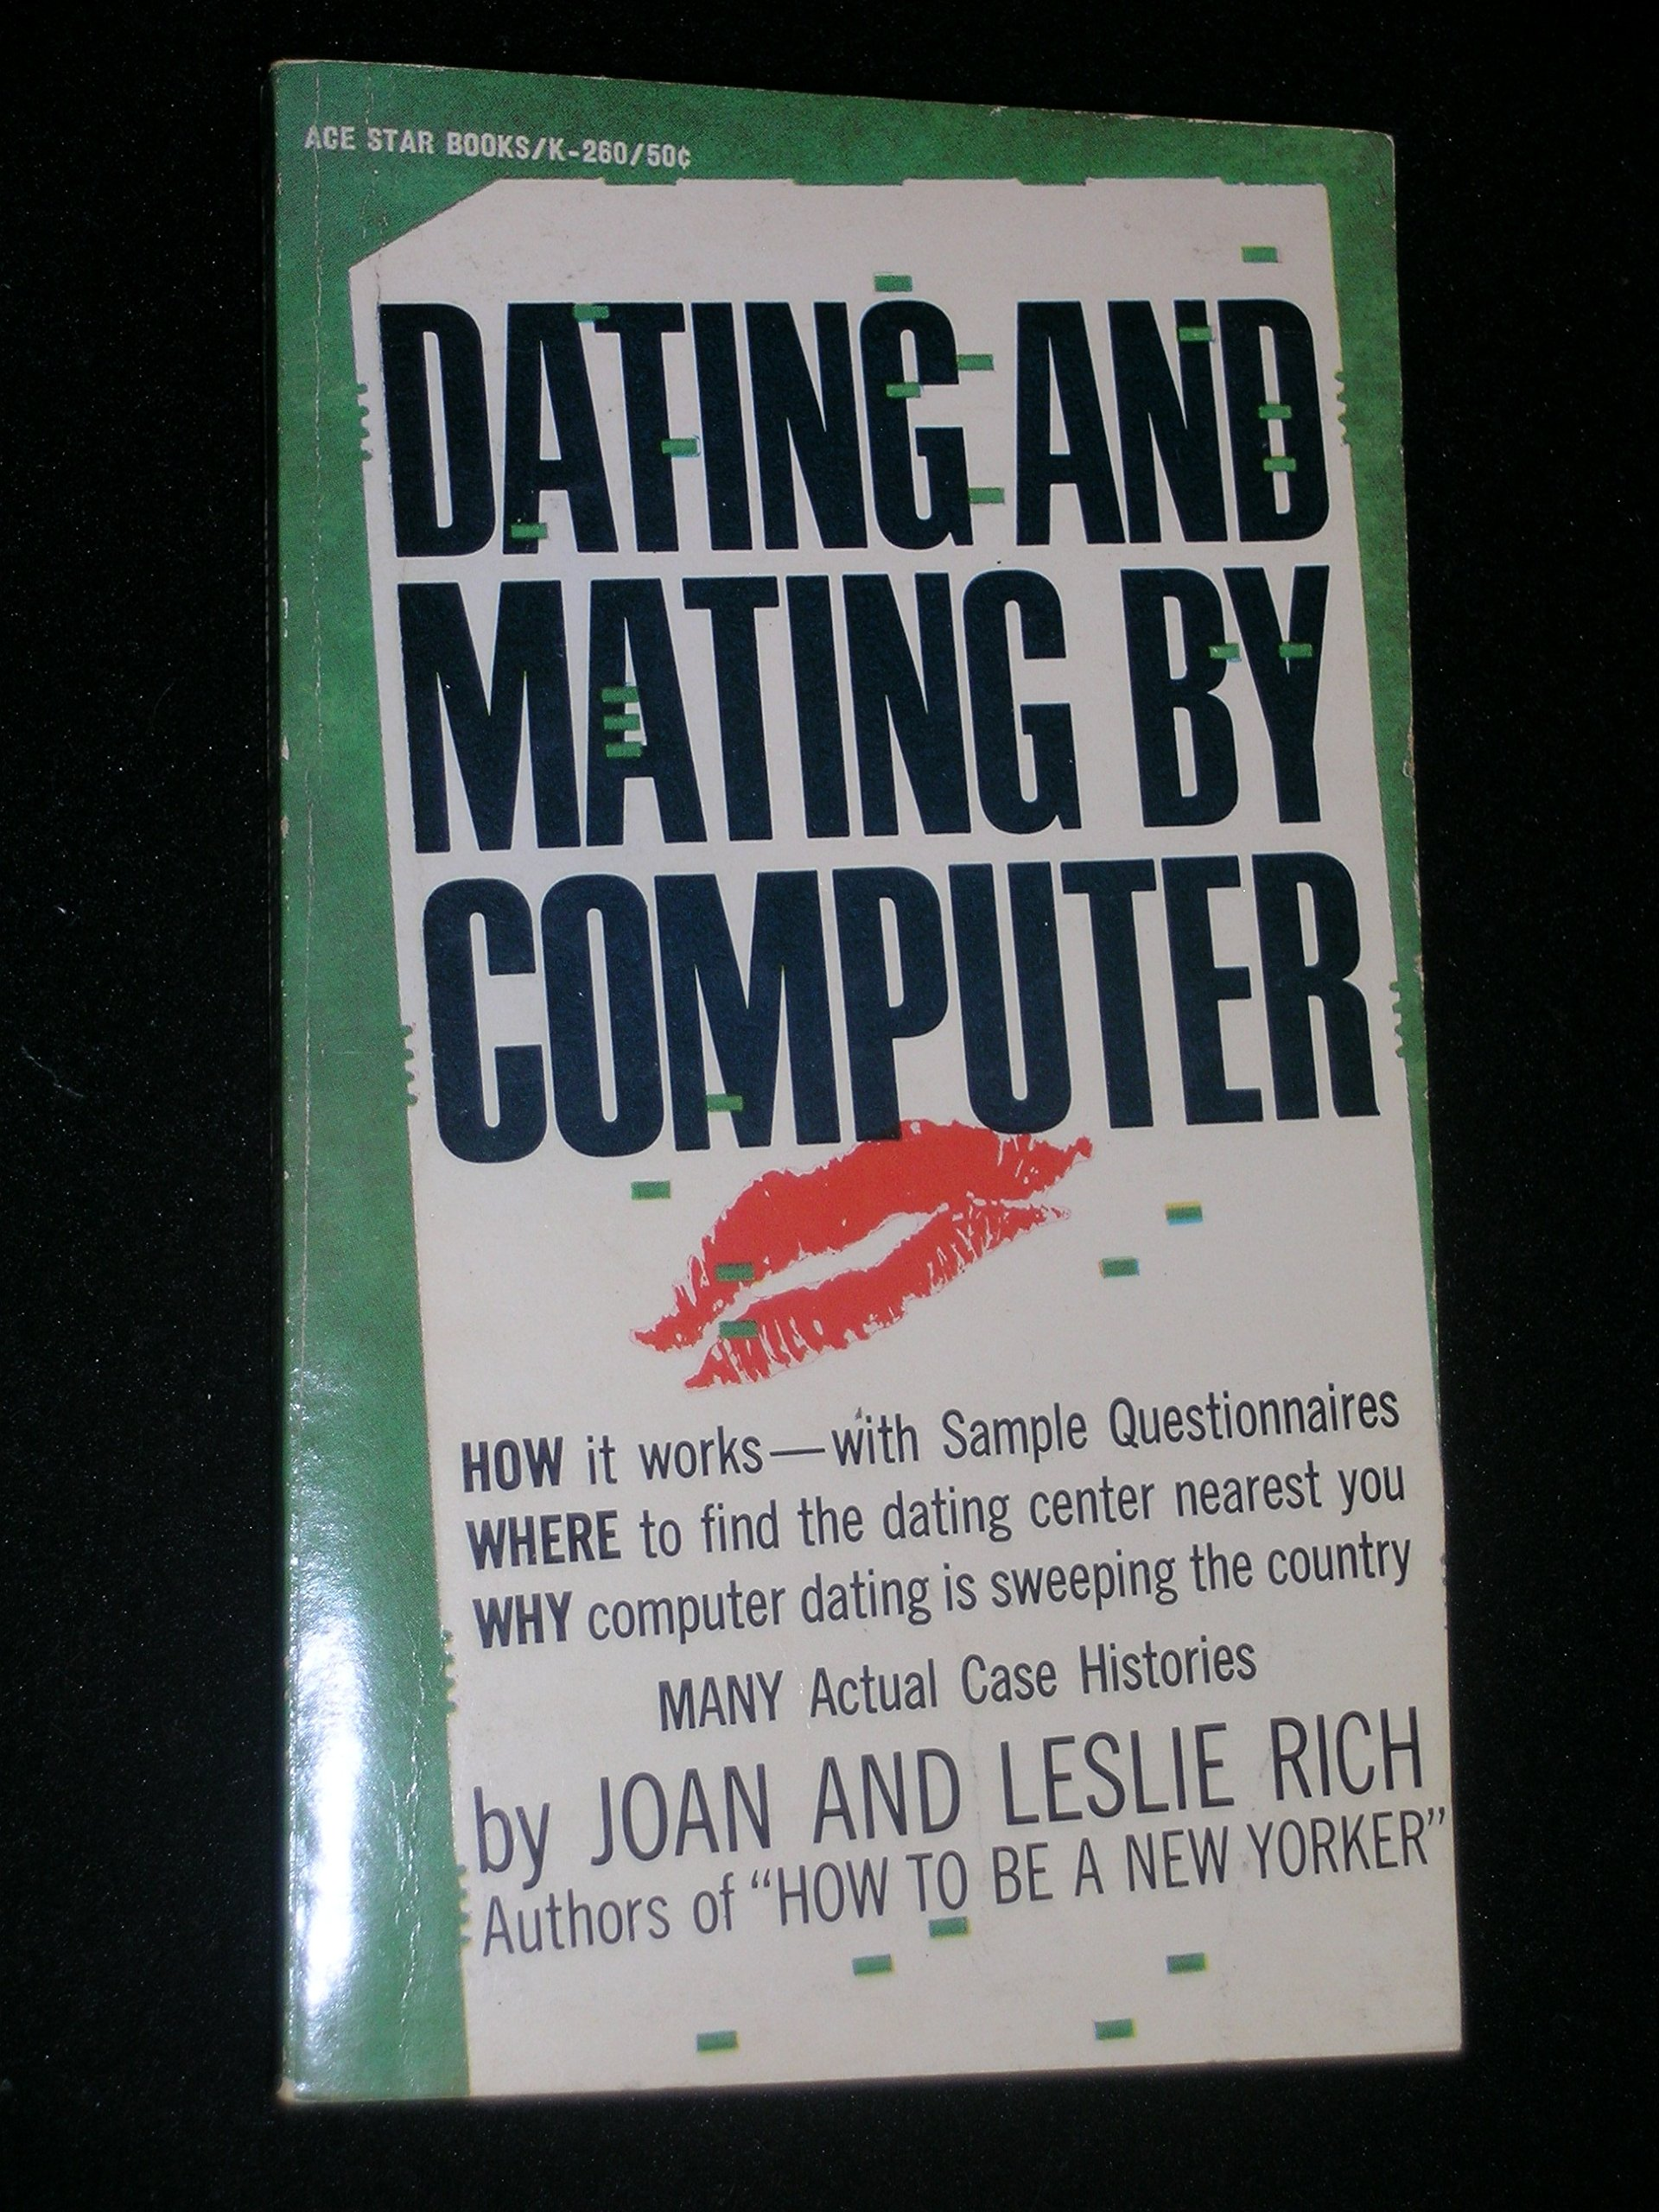 New yorker computer dating